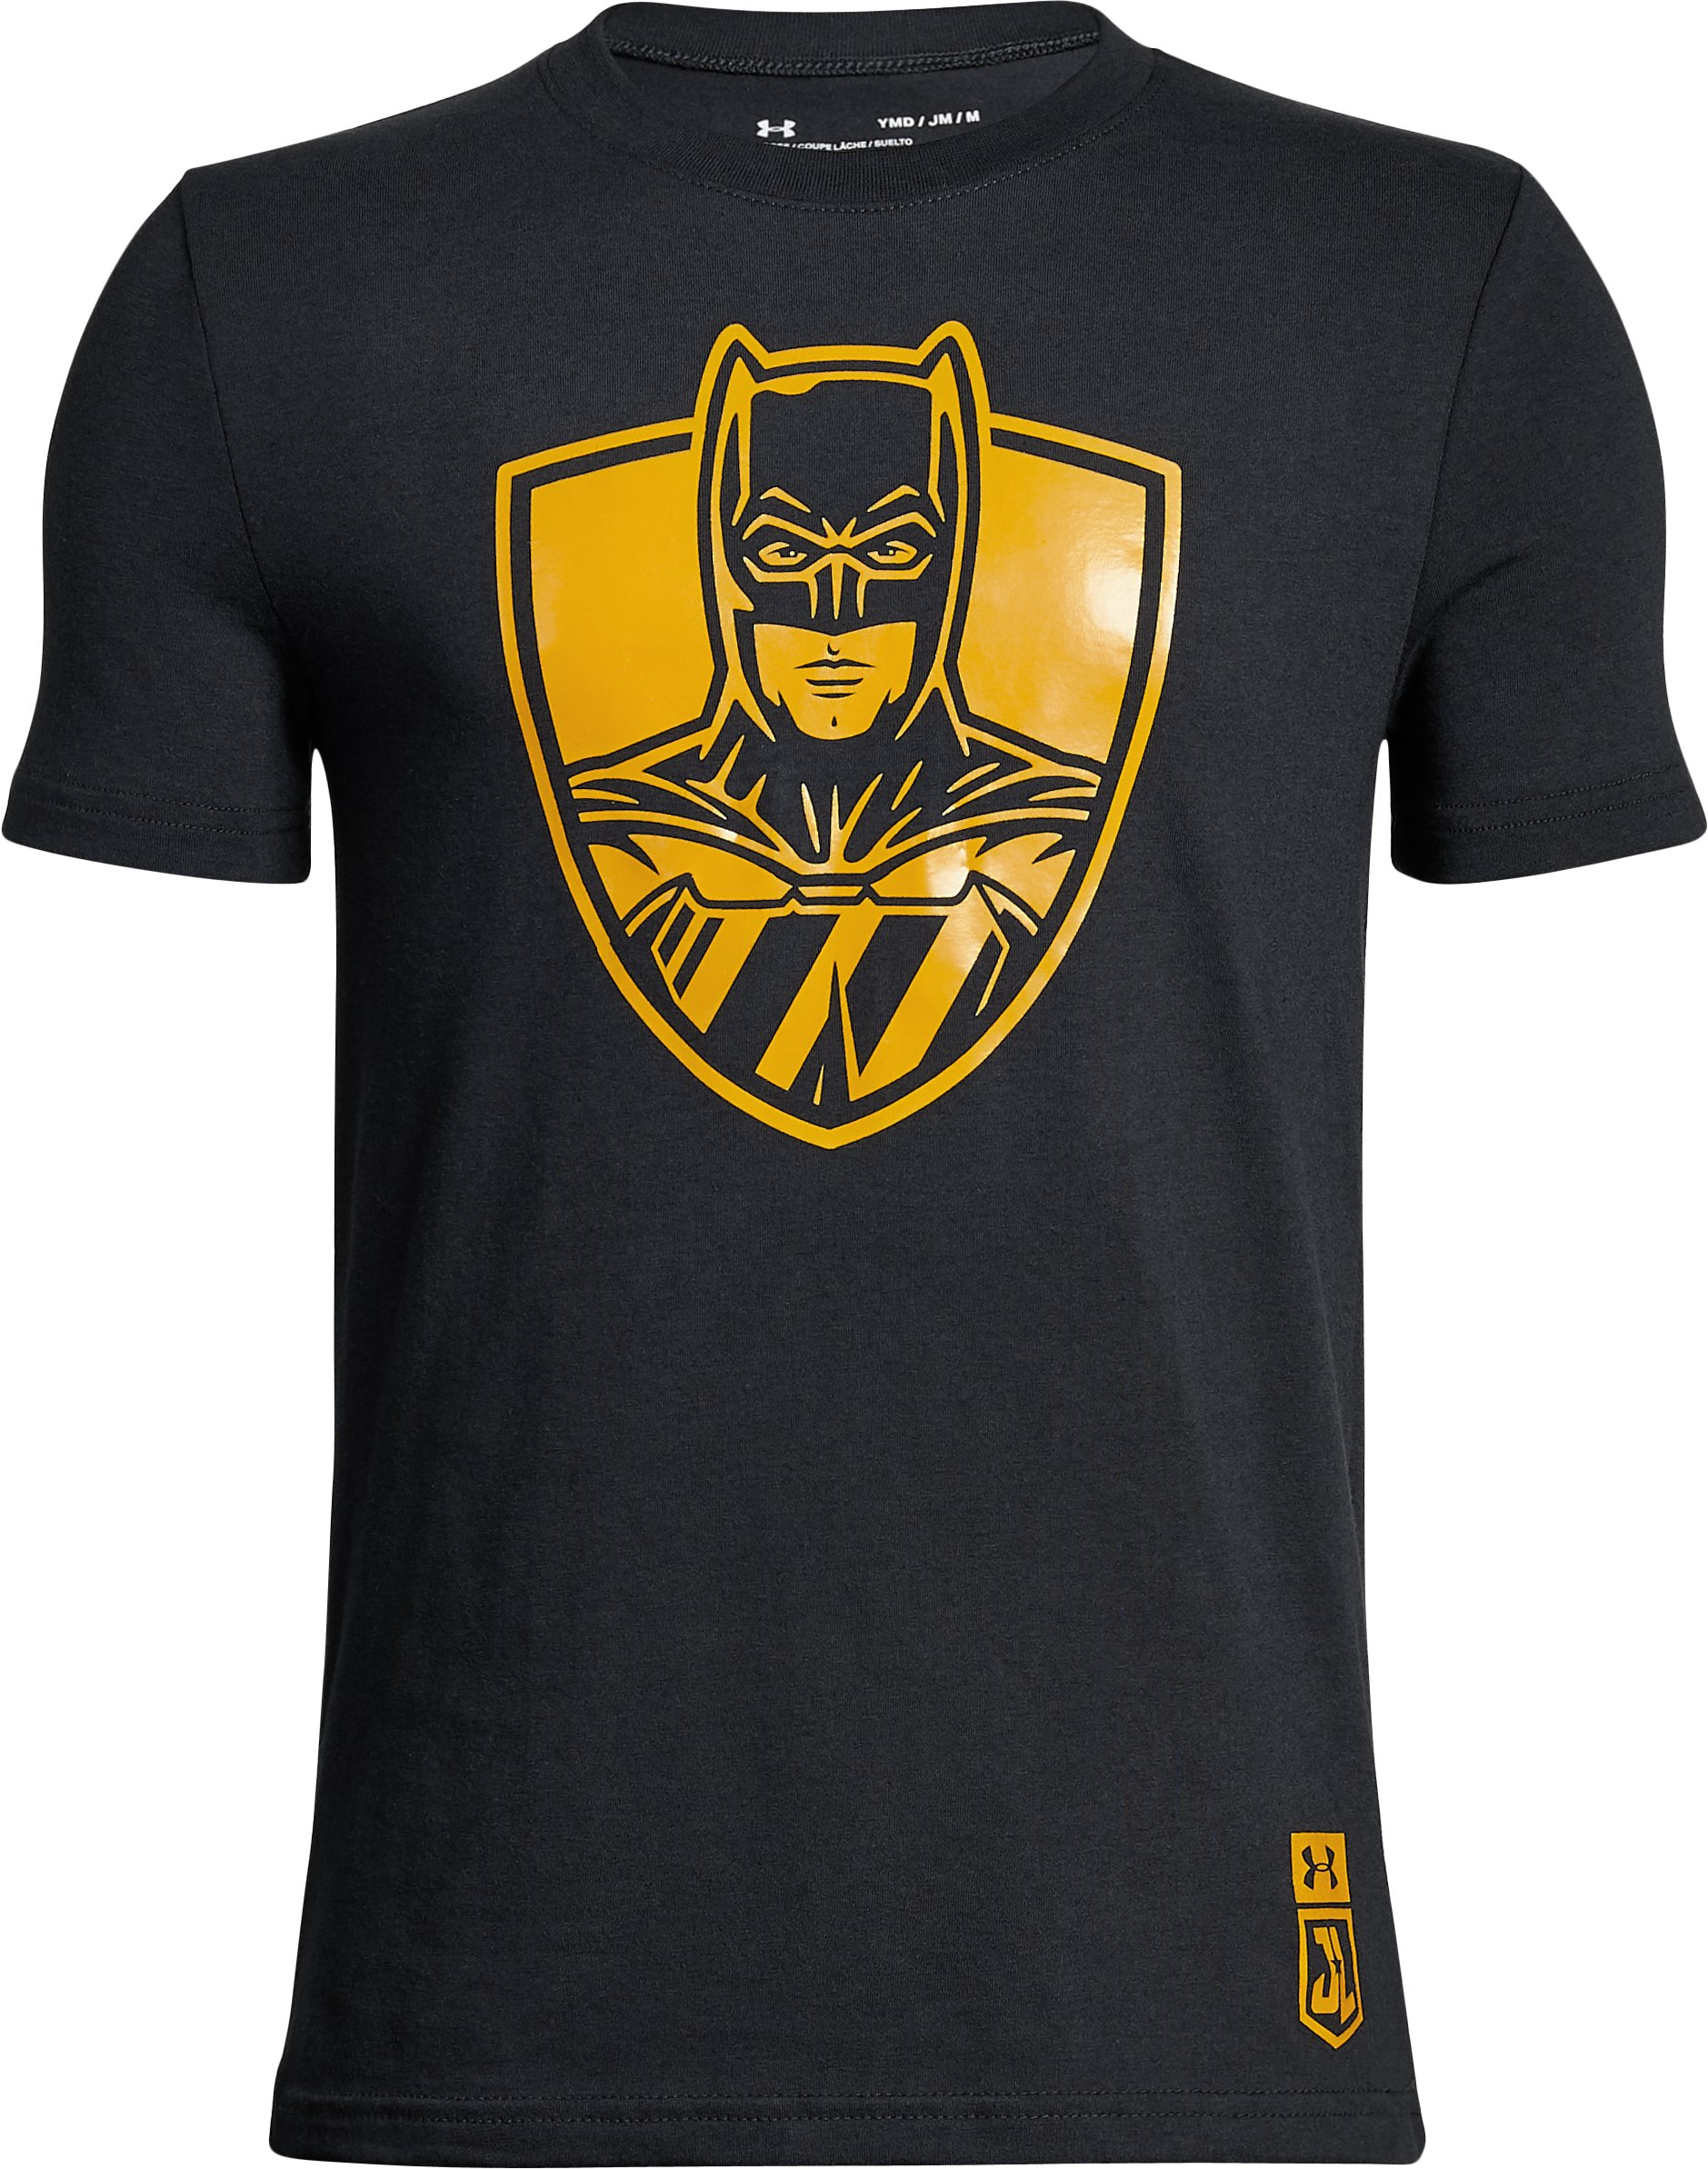 Boys' Under Armour® Alter Ego Justice League Batman T-Shirt, Black